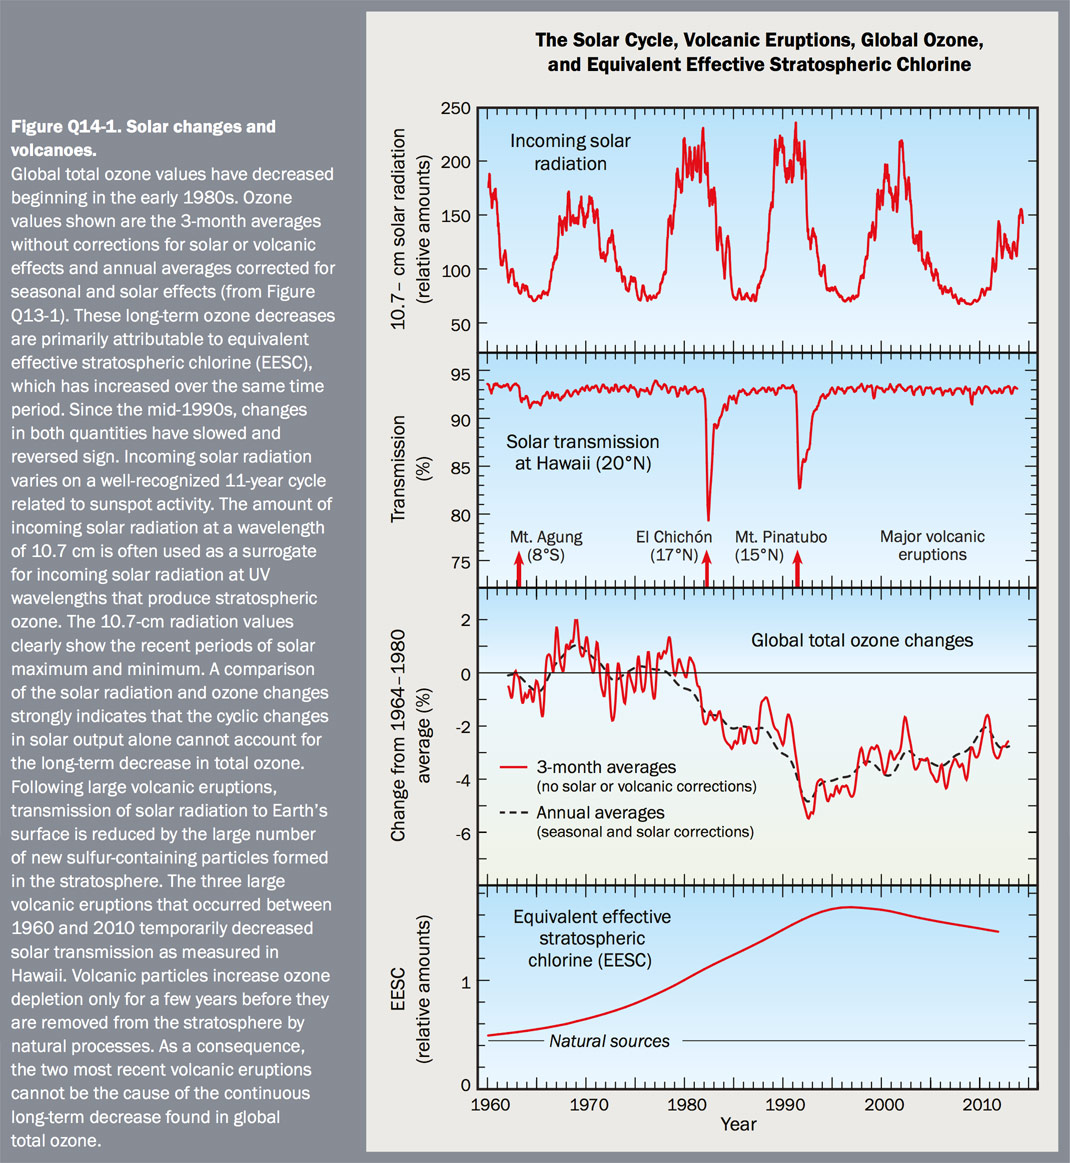 Figure Q14-1 Solar changes and volcanoes